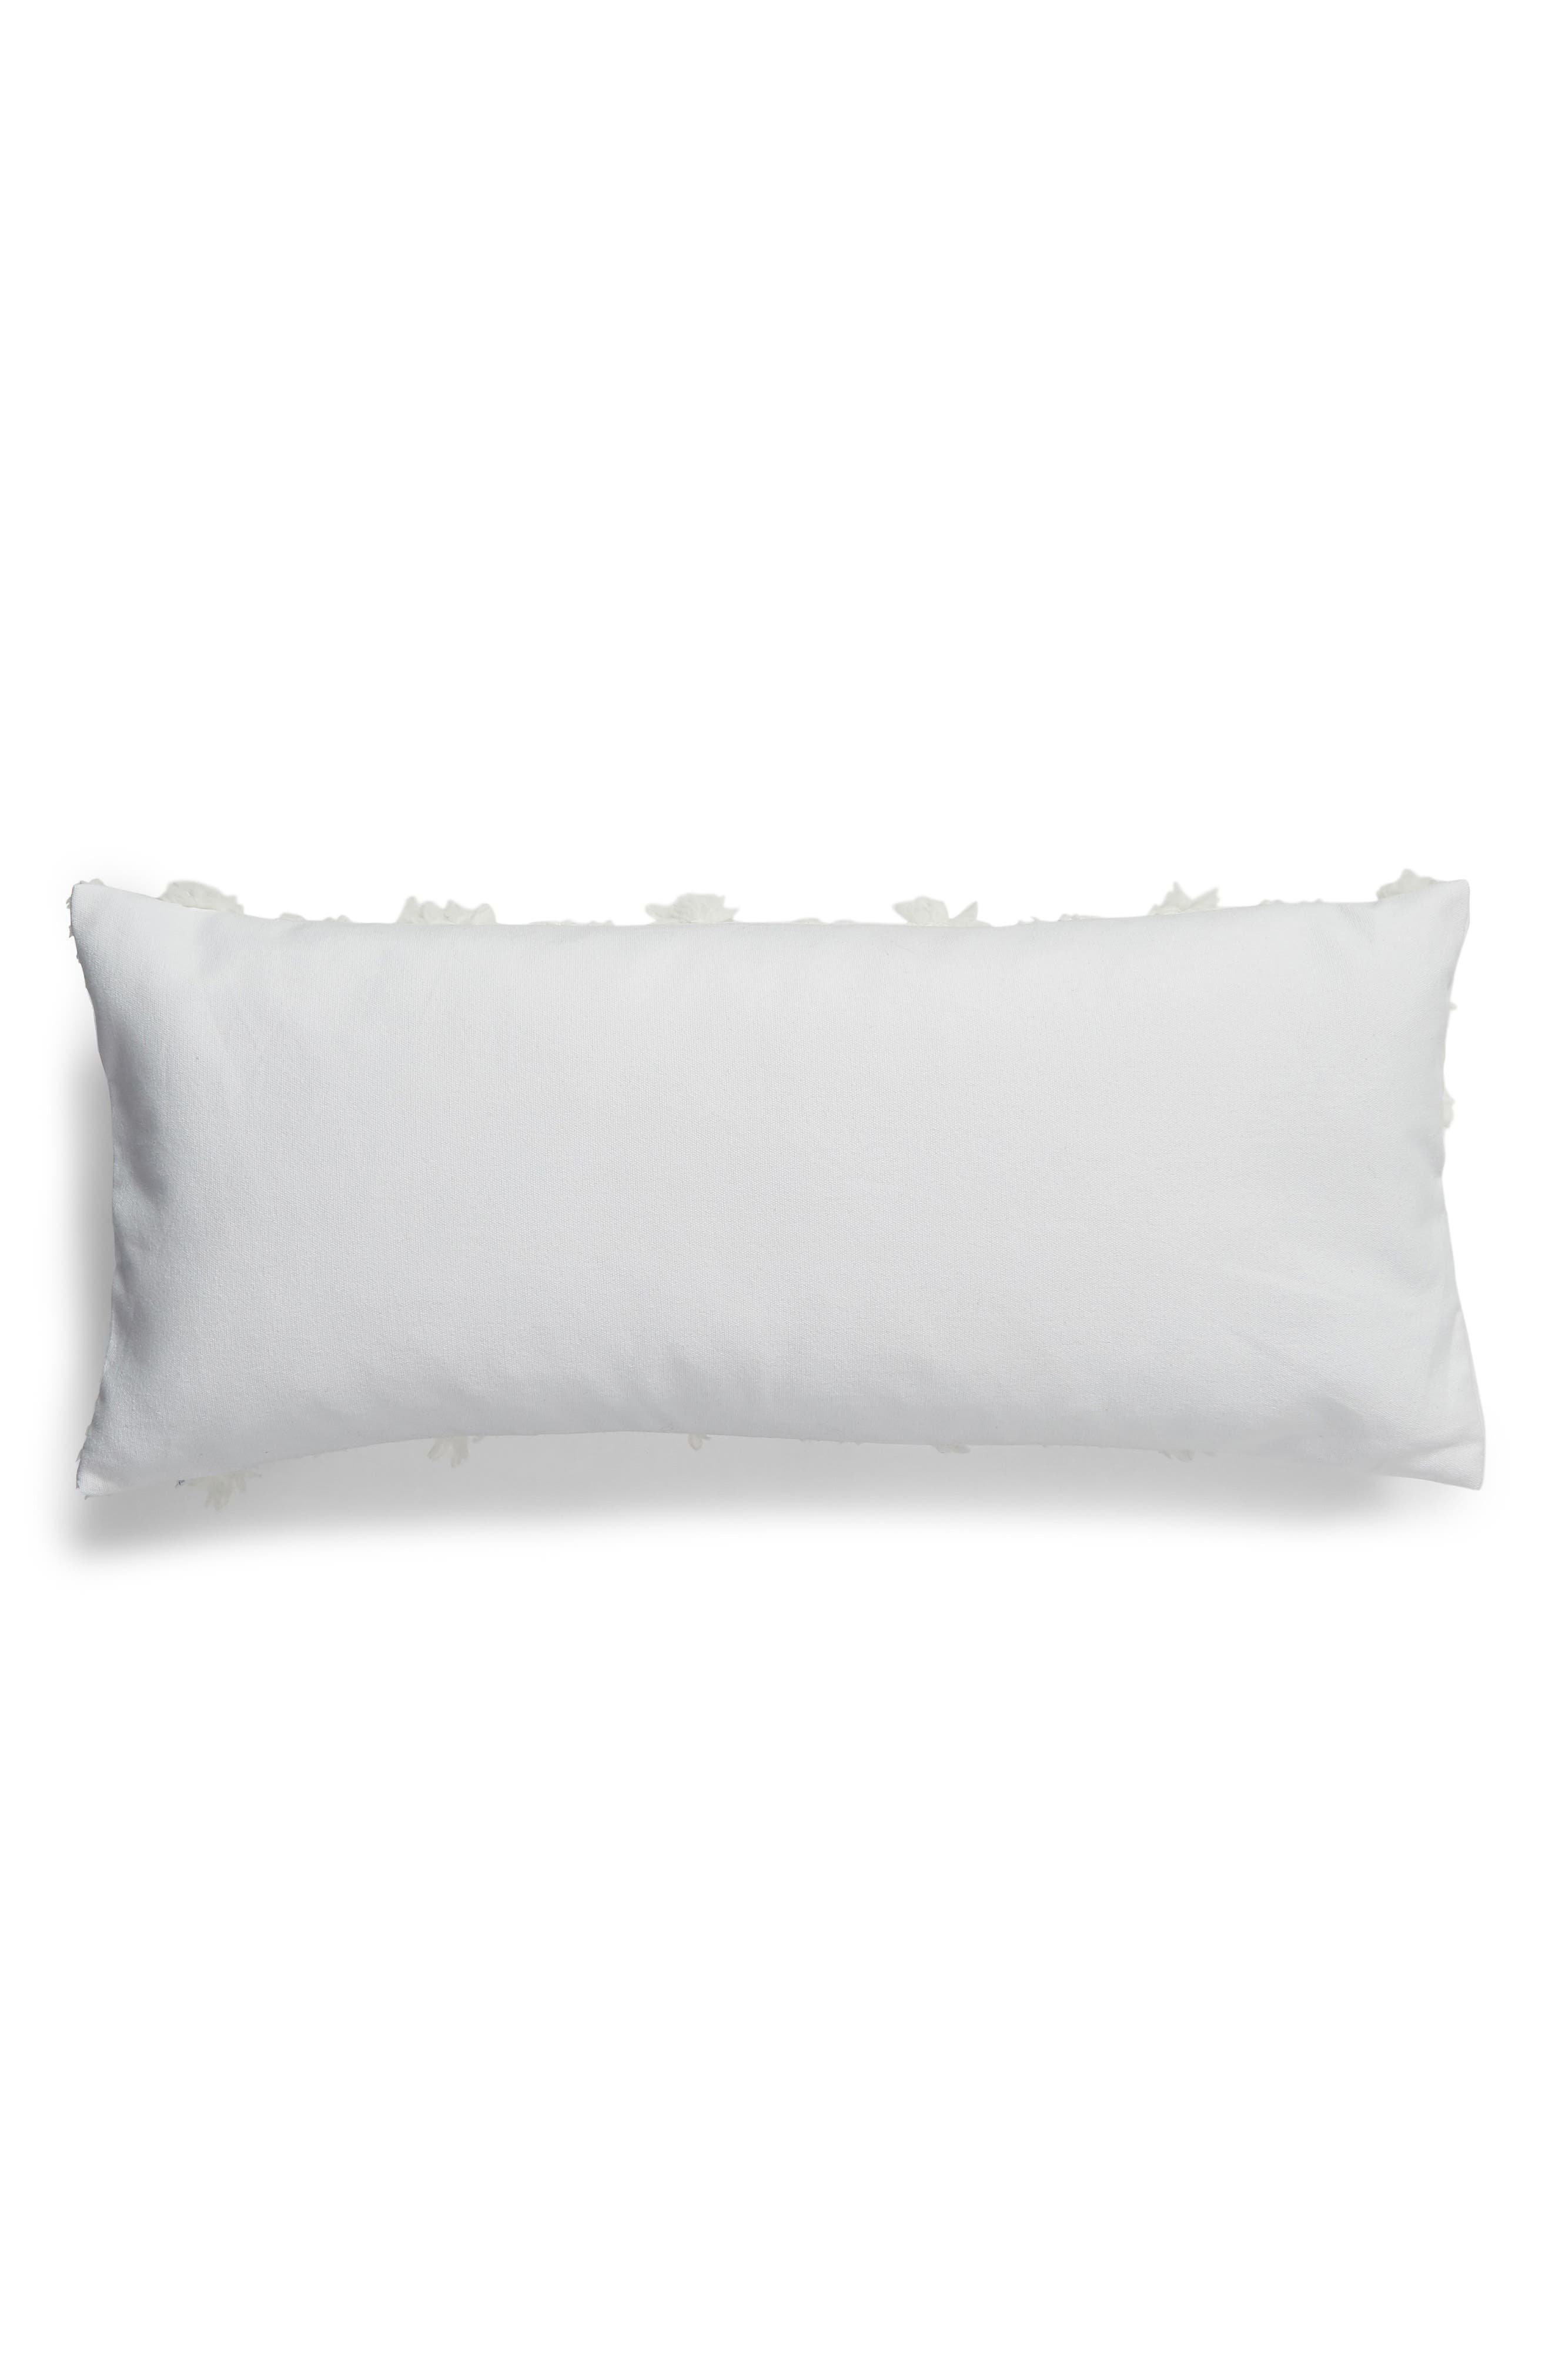 Tufted Overlay Accent Pillow,                             Alternate thumbnail 2, color,                             WHITE